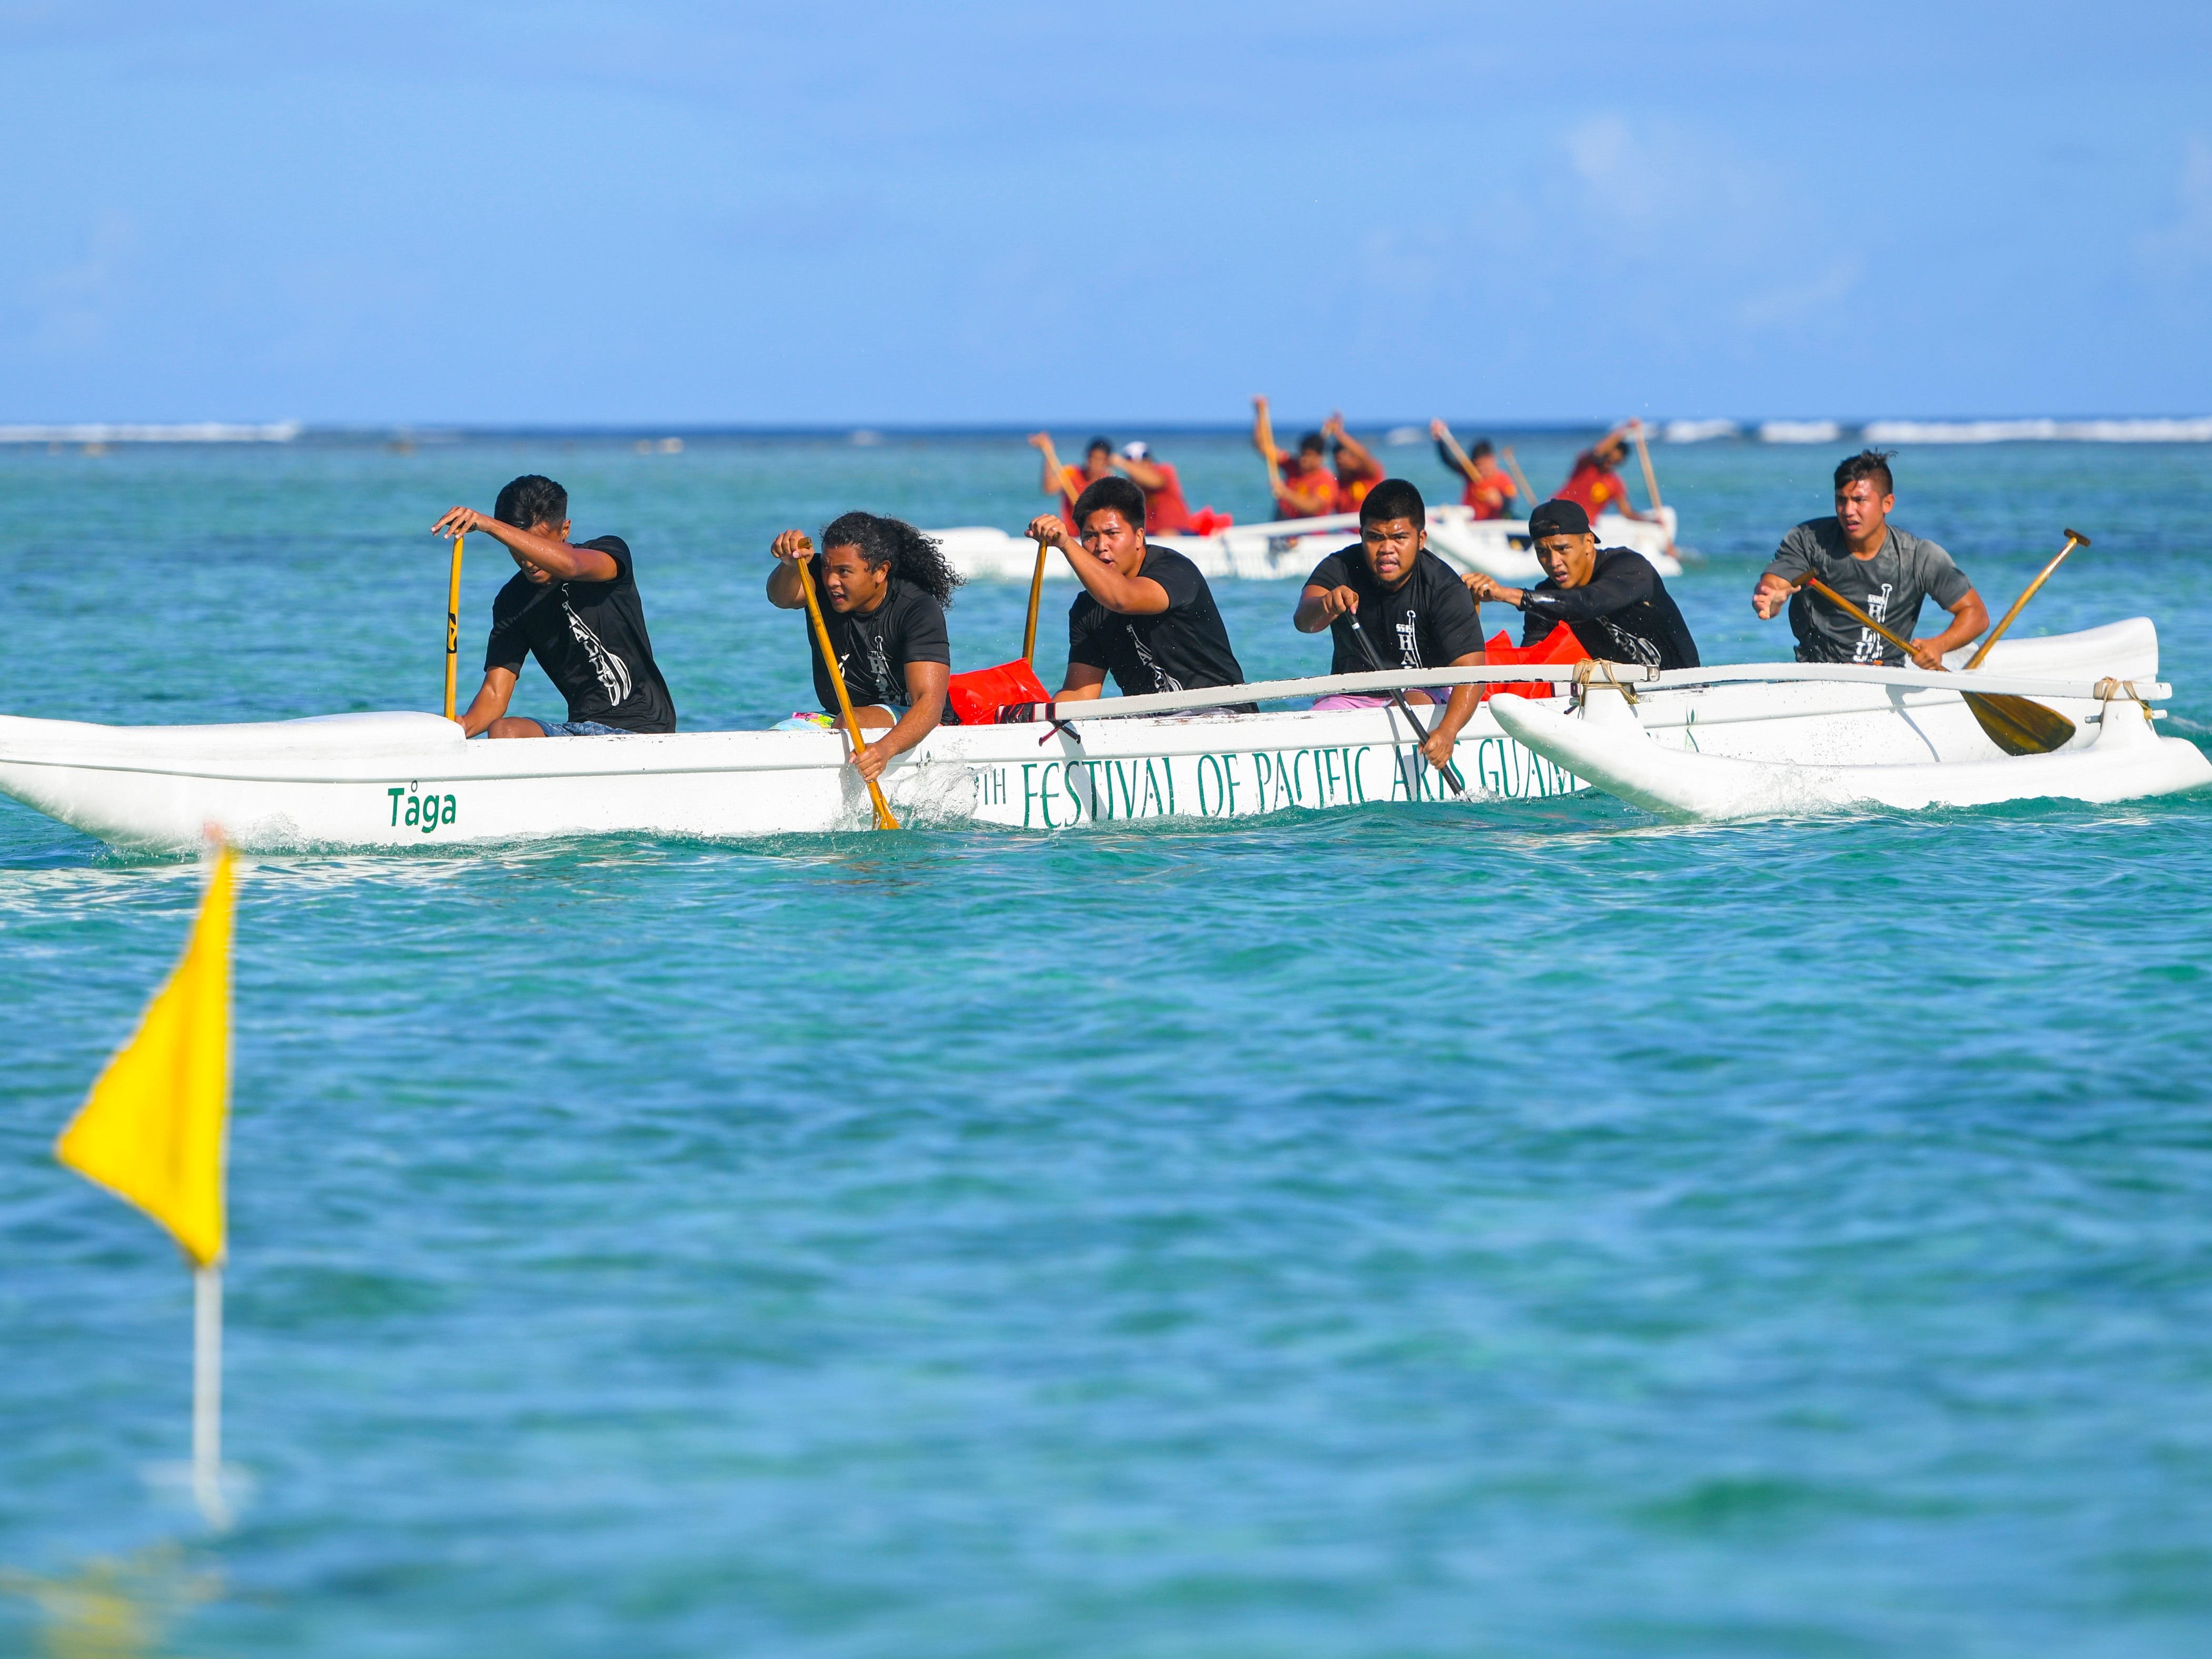 Simon Sanchez Shark paddlers focus their attention on the finish line during a 1000m mixed manhoben preliminary race in IIAAG Paddling competition at Matapang Beach in Tumon on Saturday, May 11, 2019.